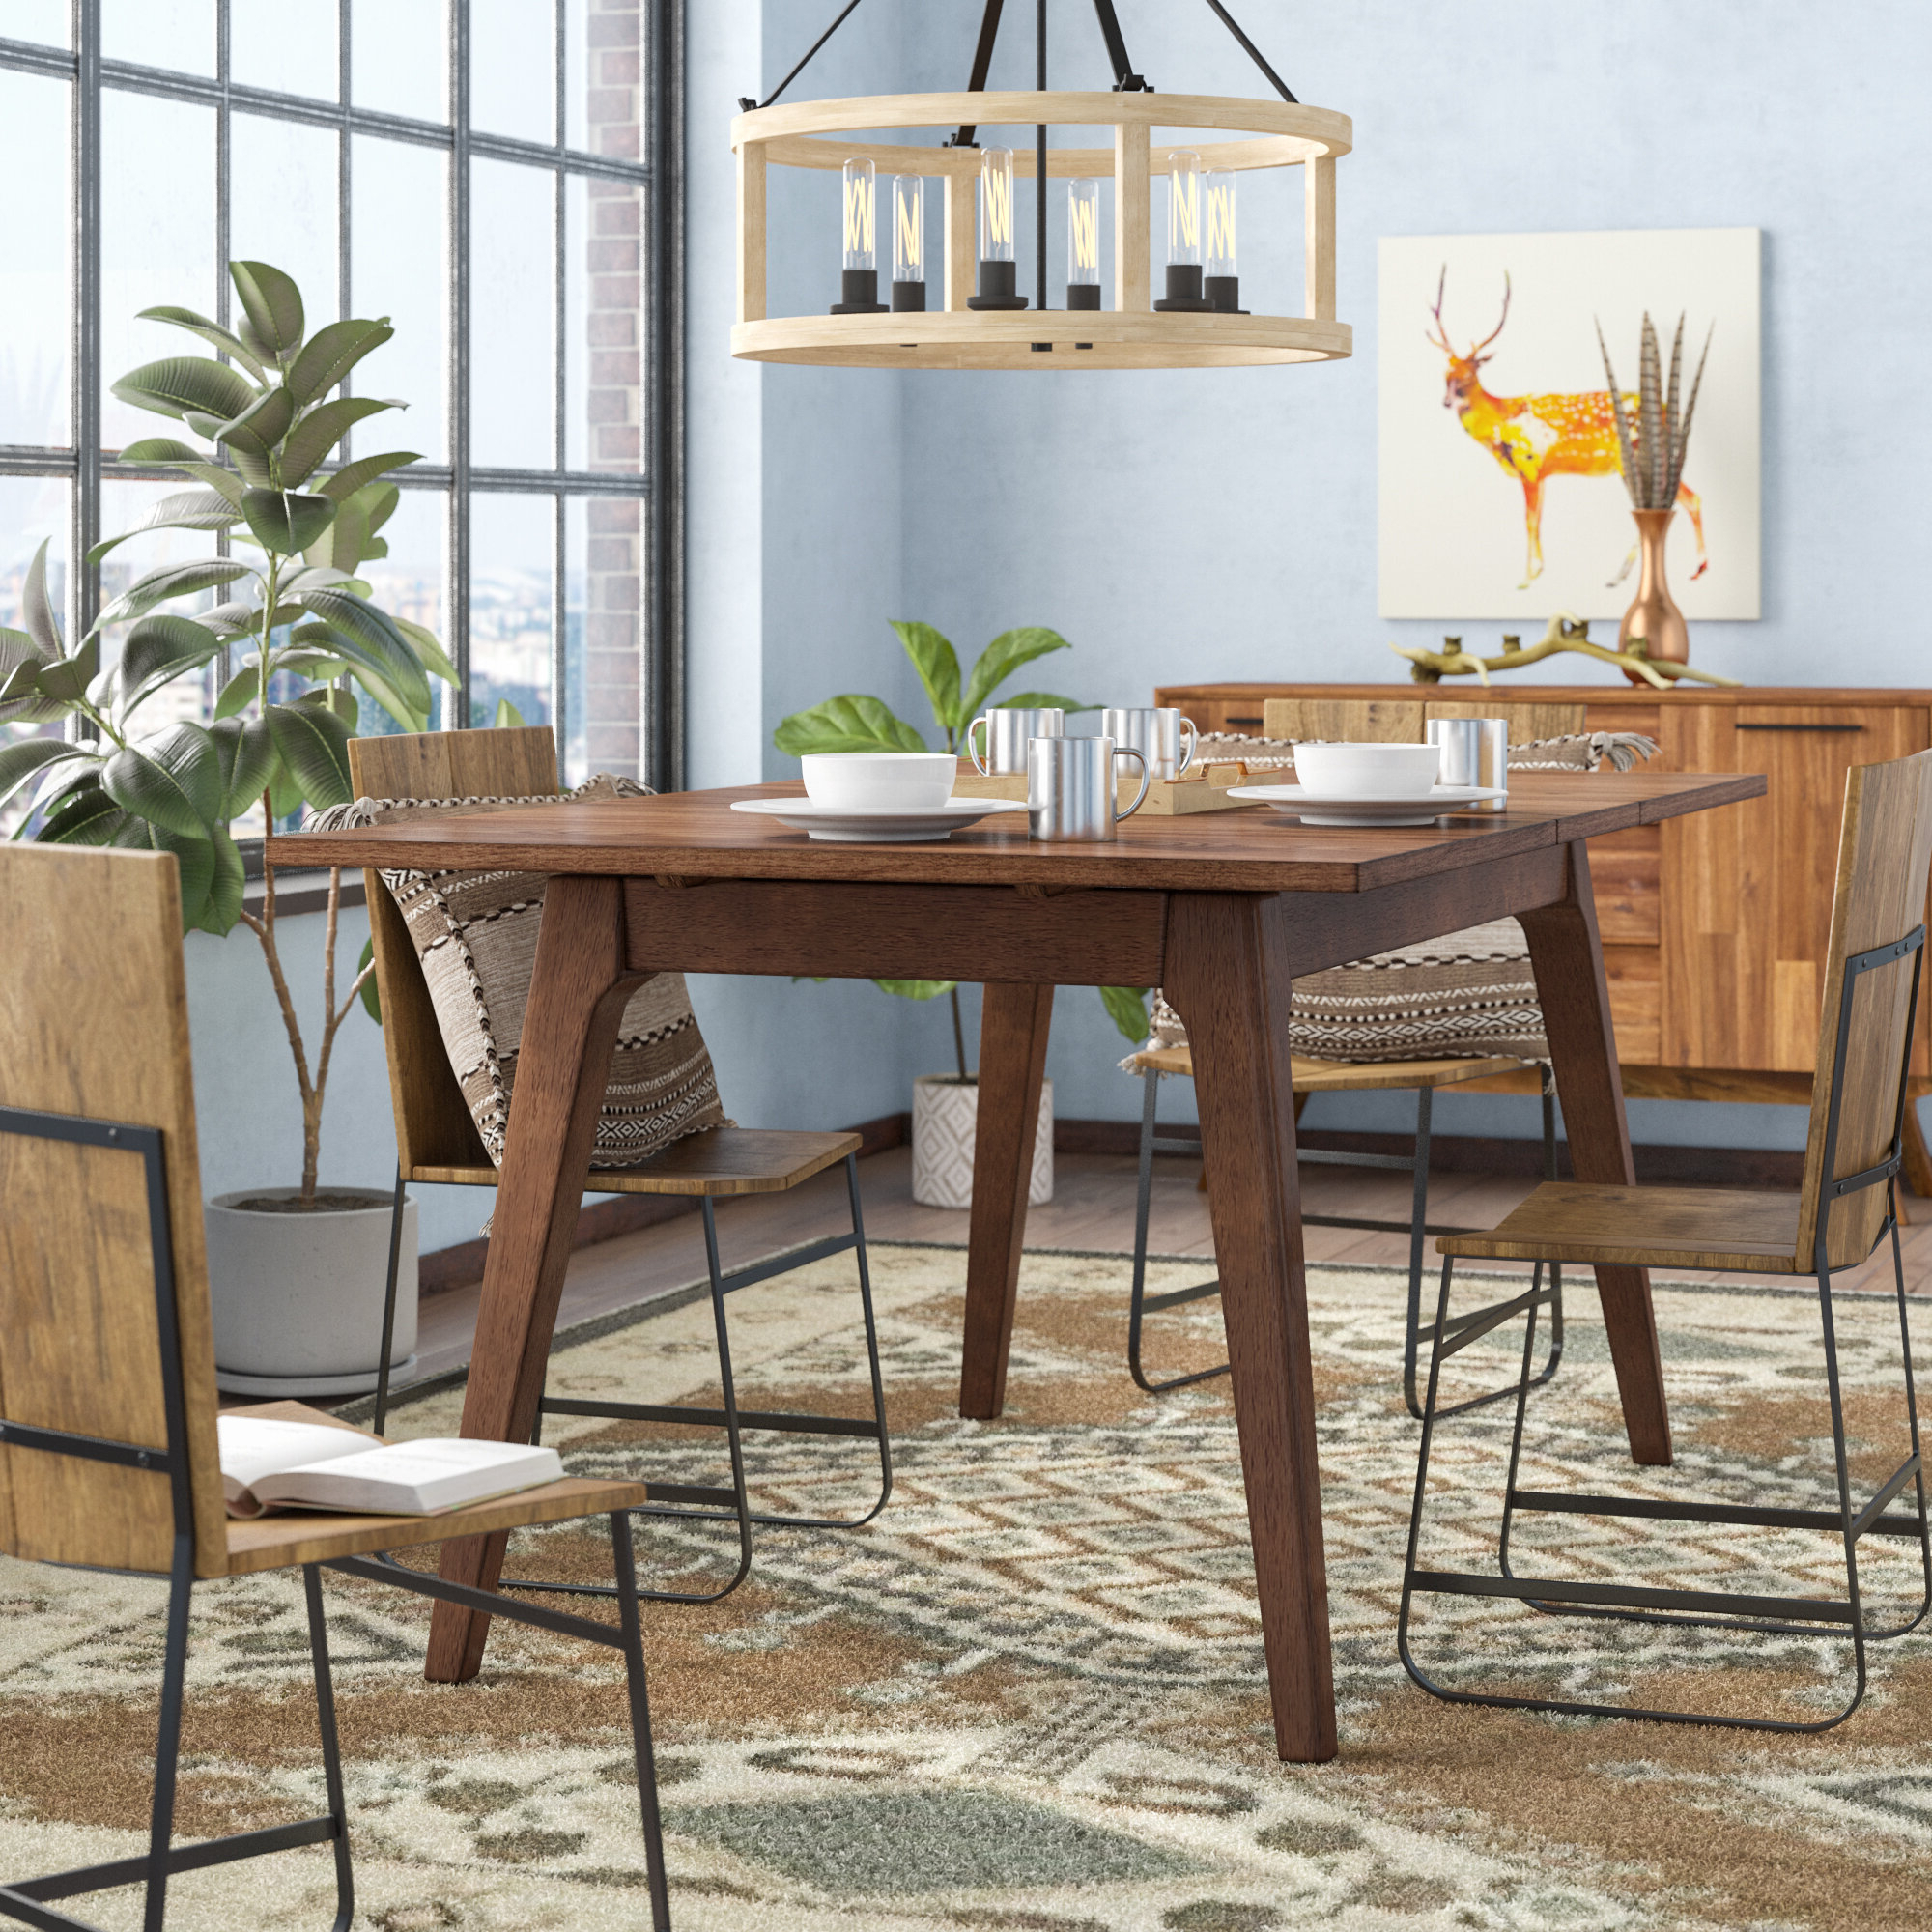 Transitional 4 Seating Drop Leaf Casual Dining Tables Intended For Trendy Union Rustic Lehto Drop Leaf Dining Table & Reviews (View 21 of 25)